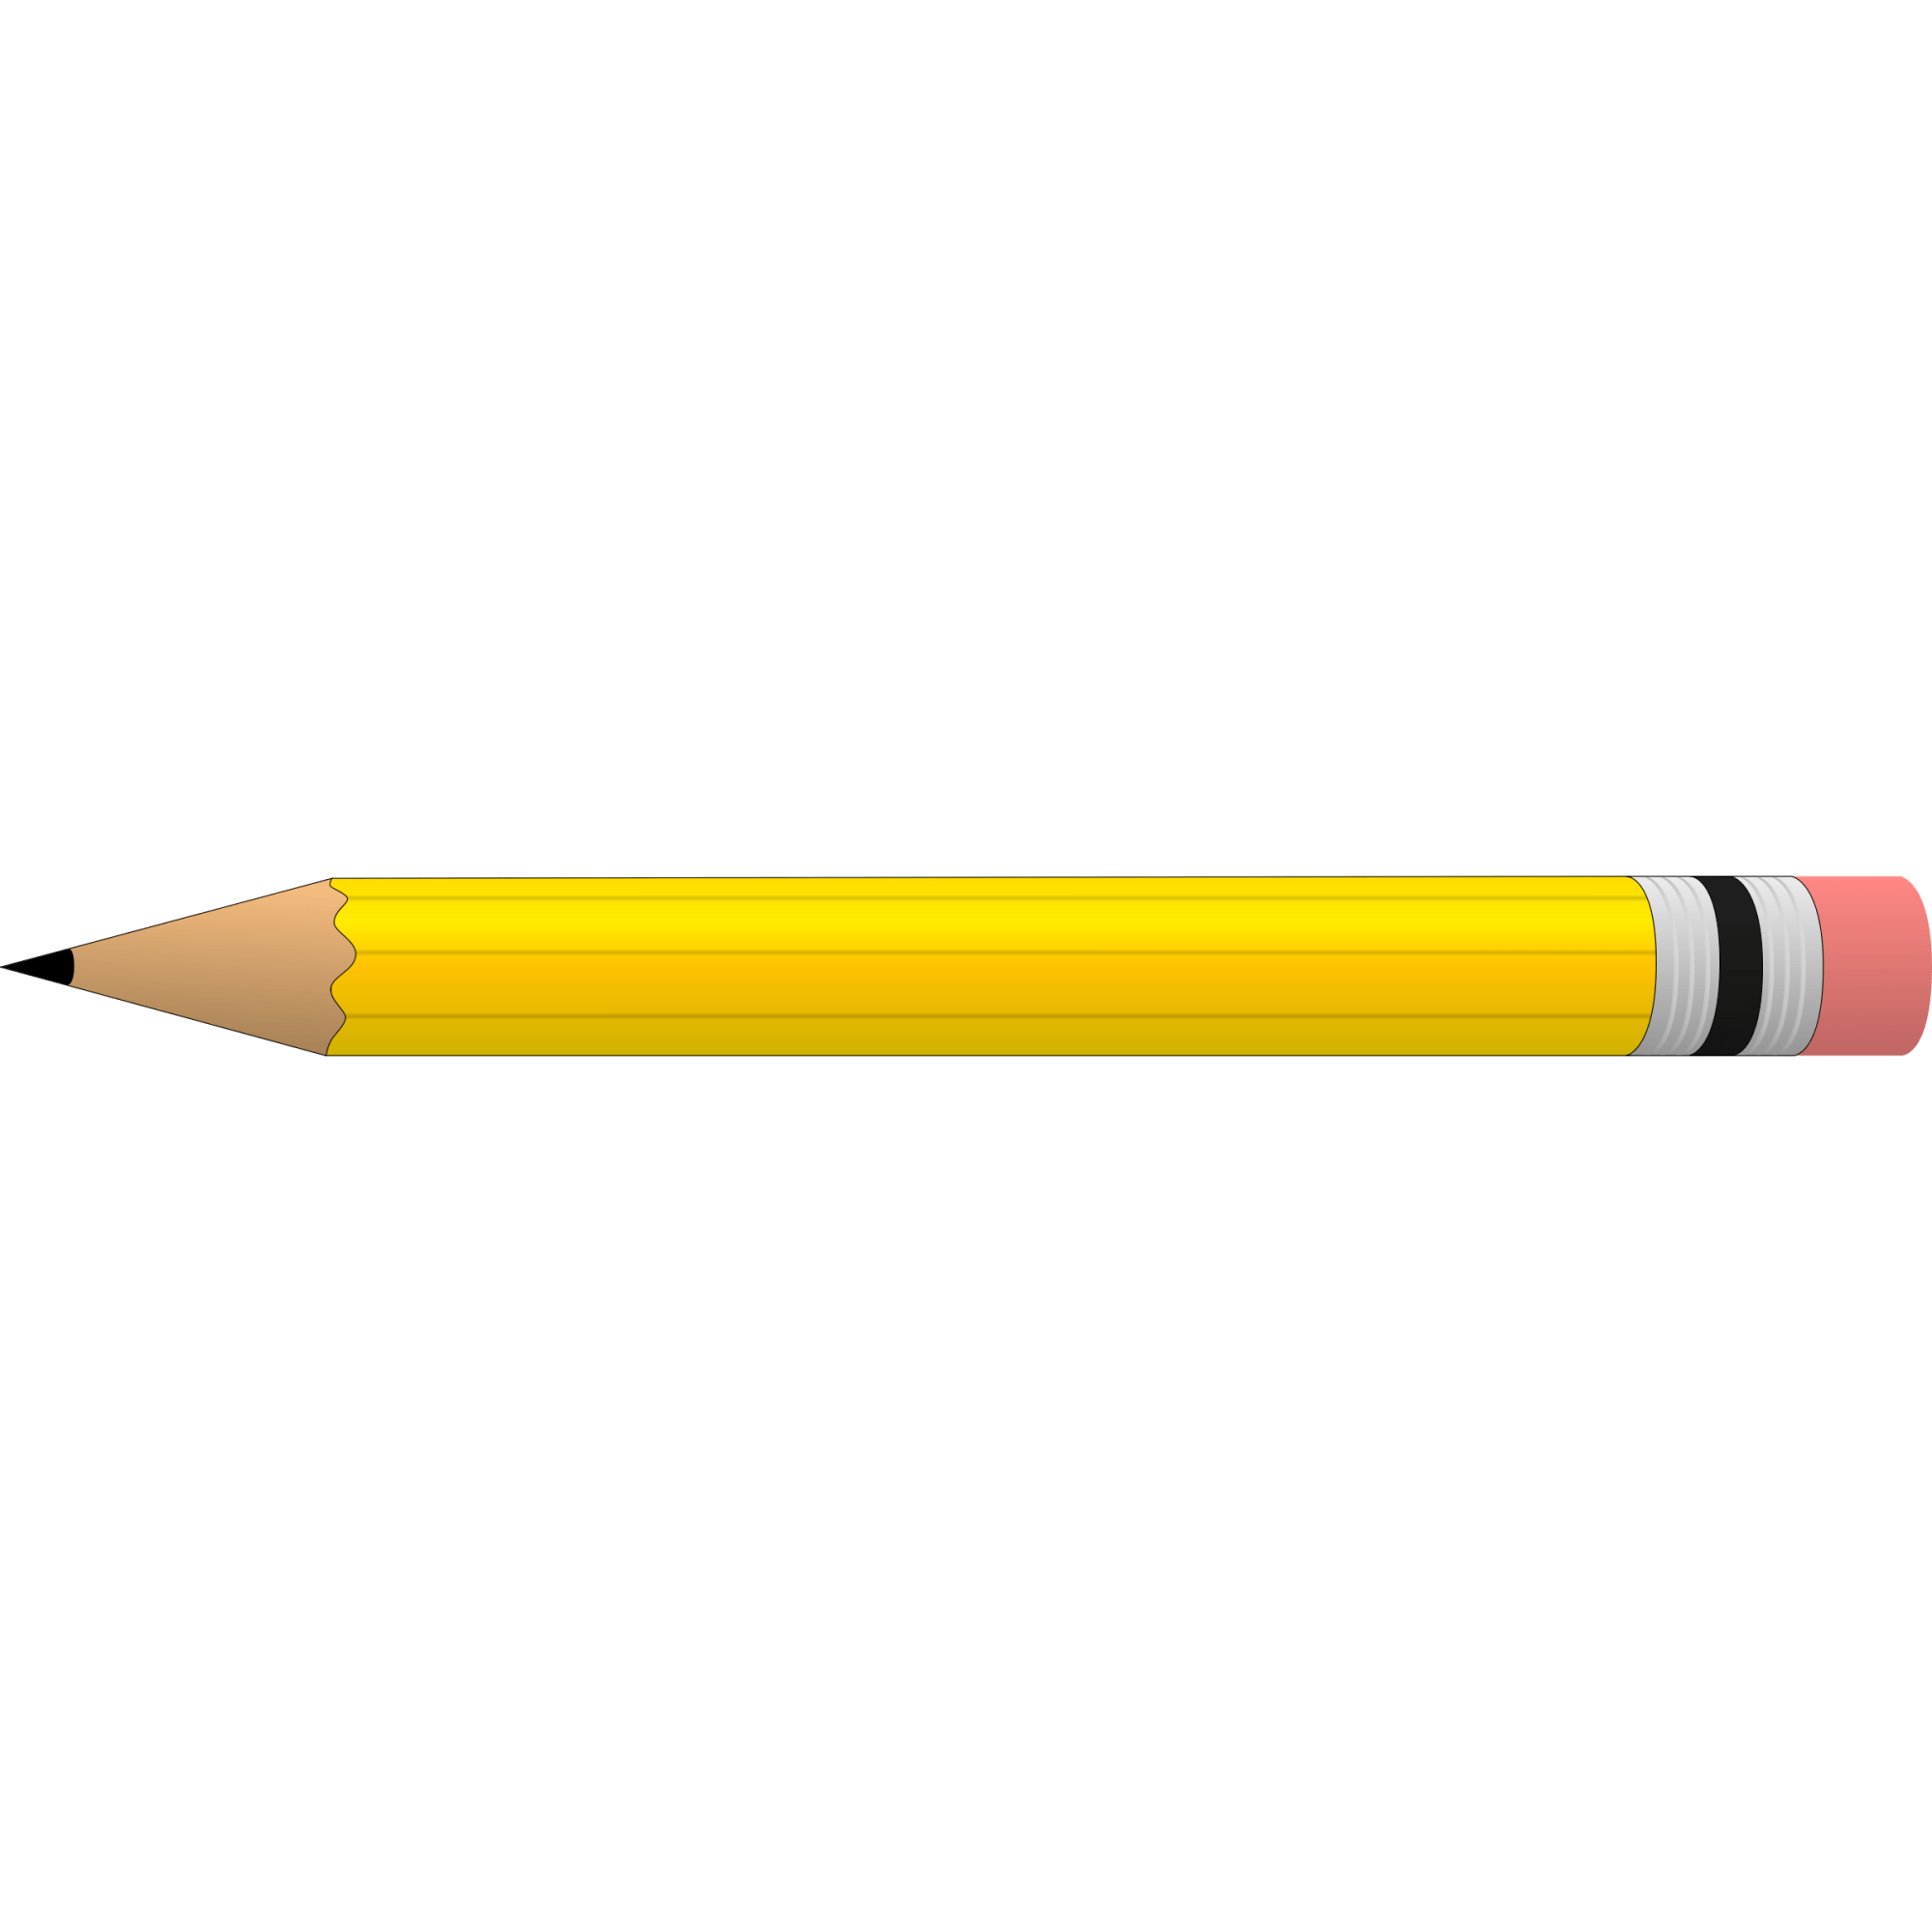 hight resolution of top pencil for clip art free clipart image